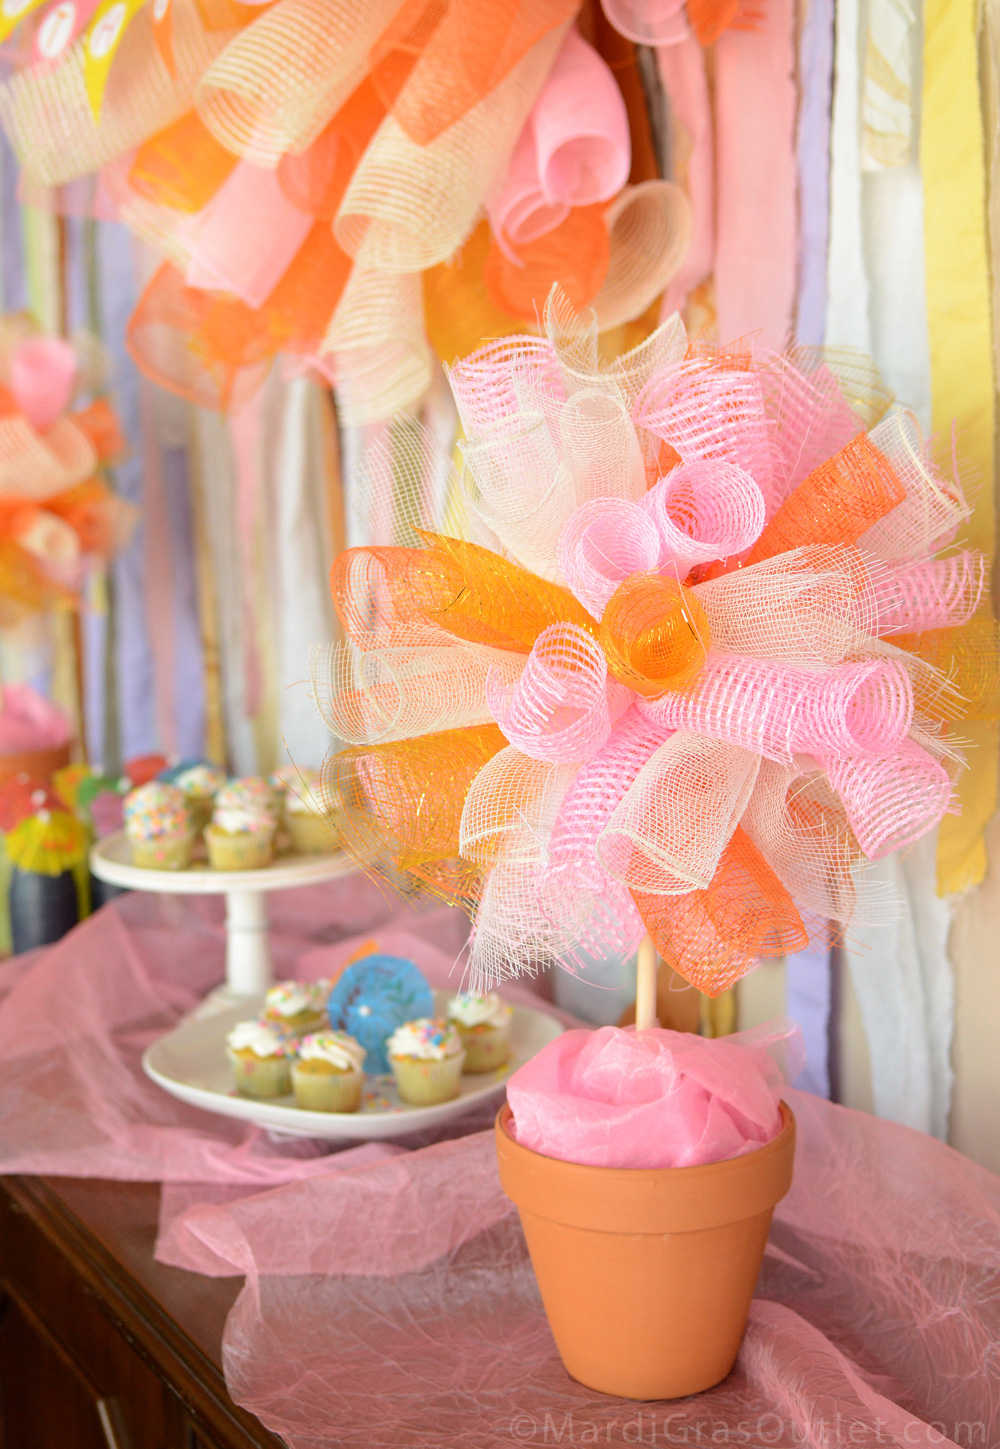 Party ideas by mardi gras outlet sweet summer